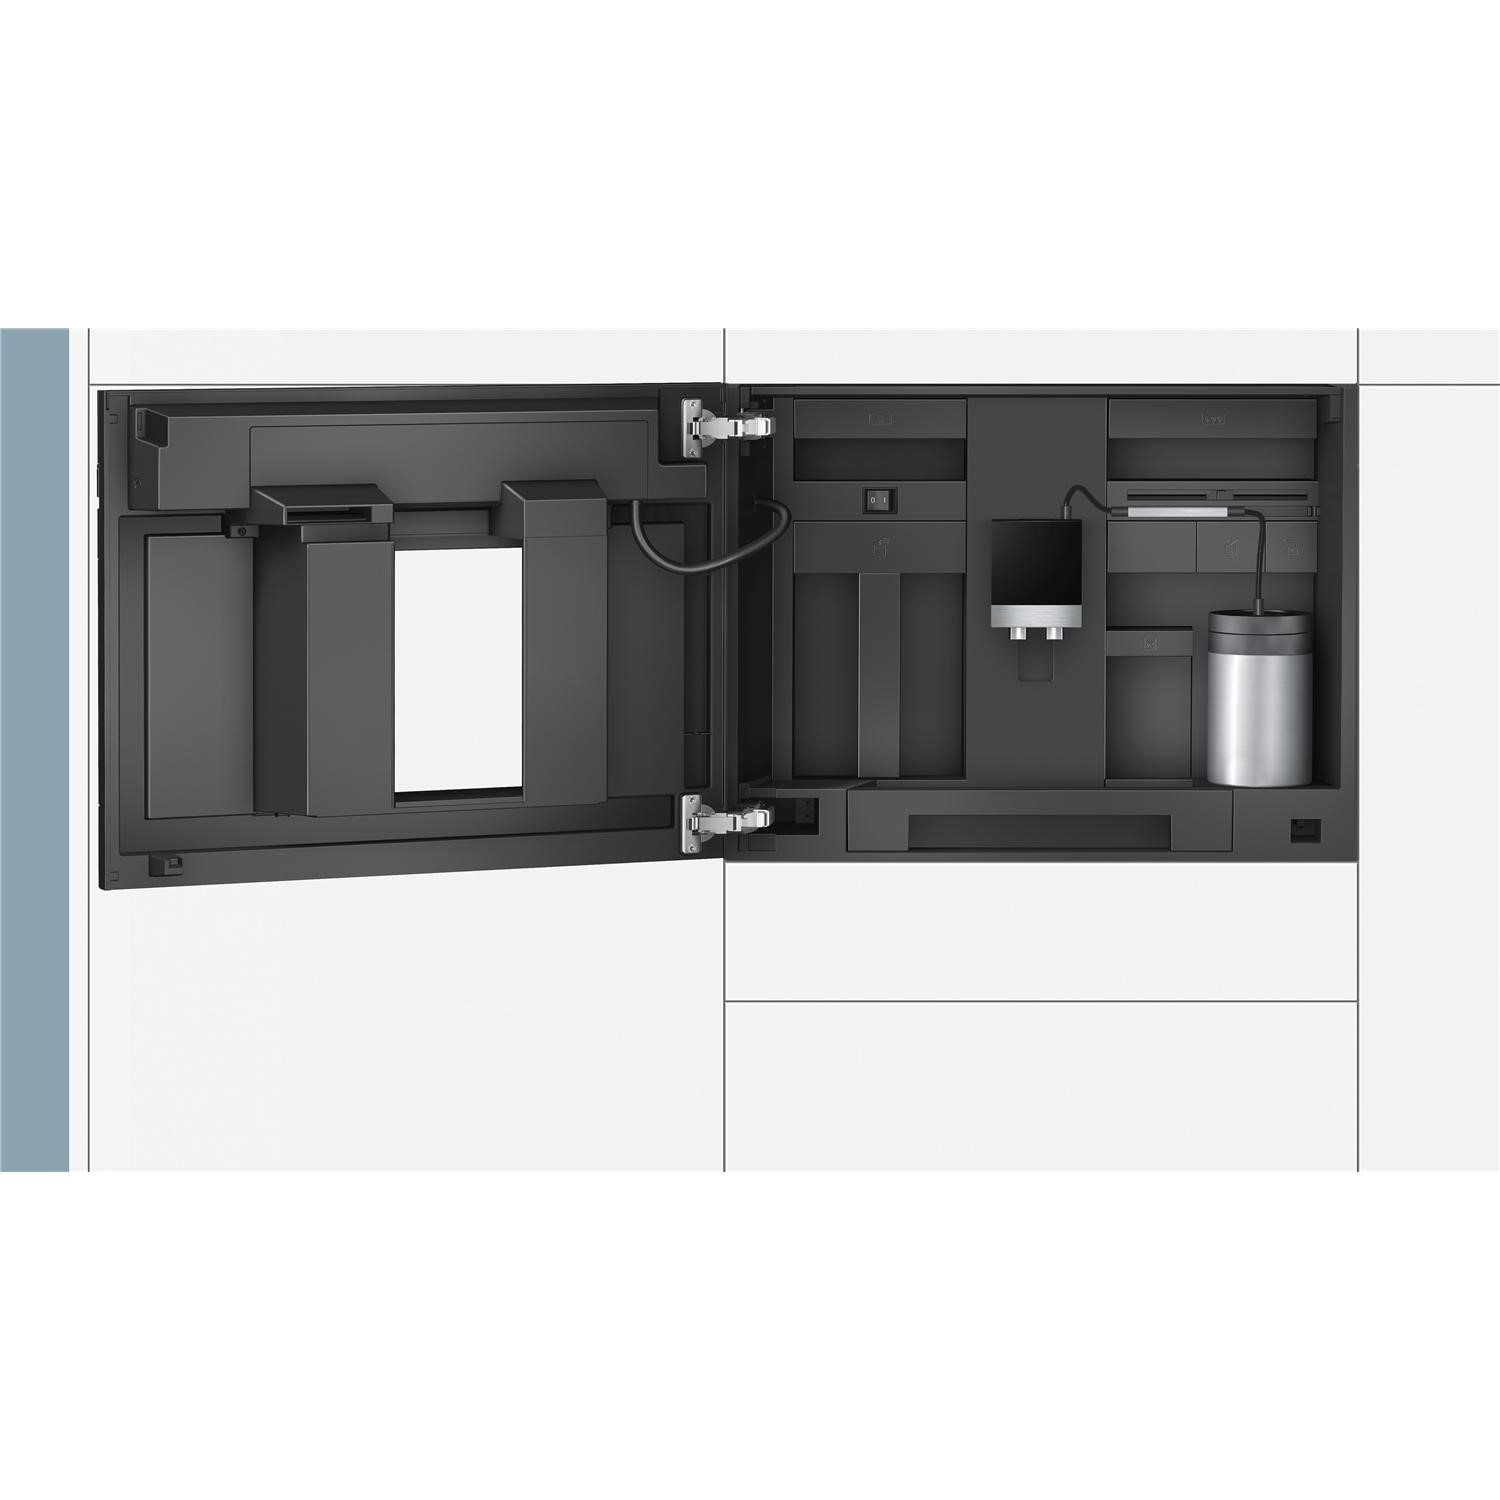 Siemens CT636LES6 iQ700 Wifi Connected